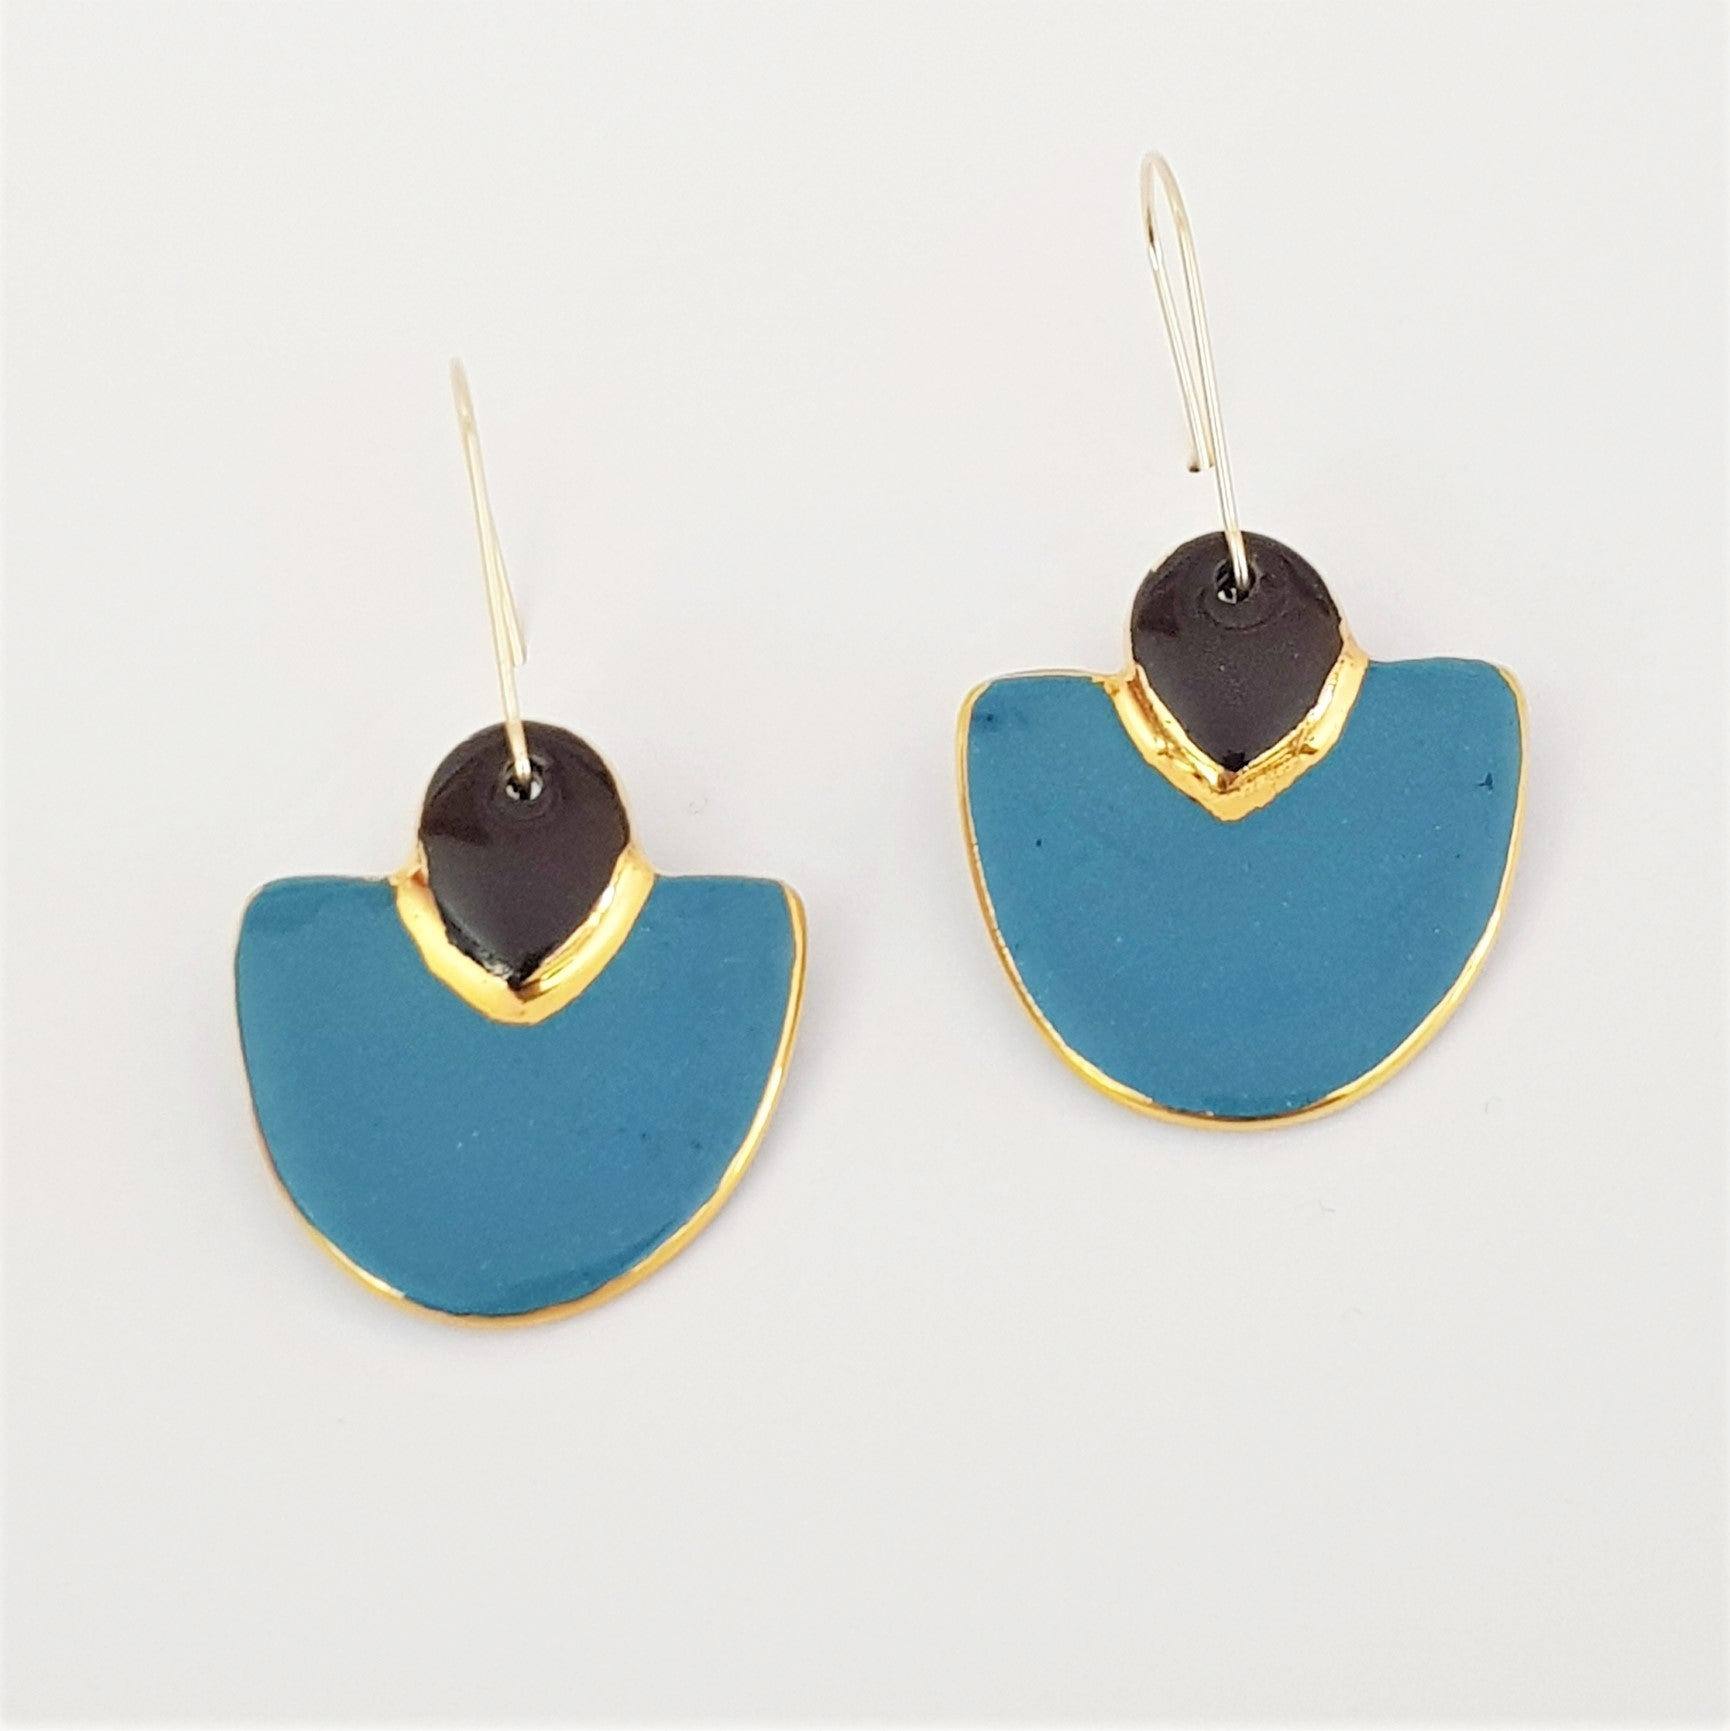 Two toned elegant drops in teal and black with gold border.